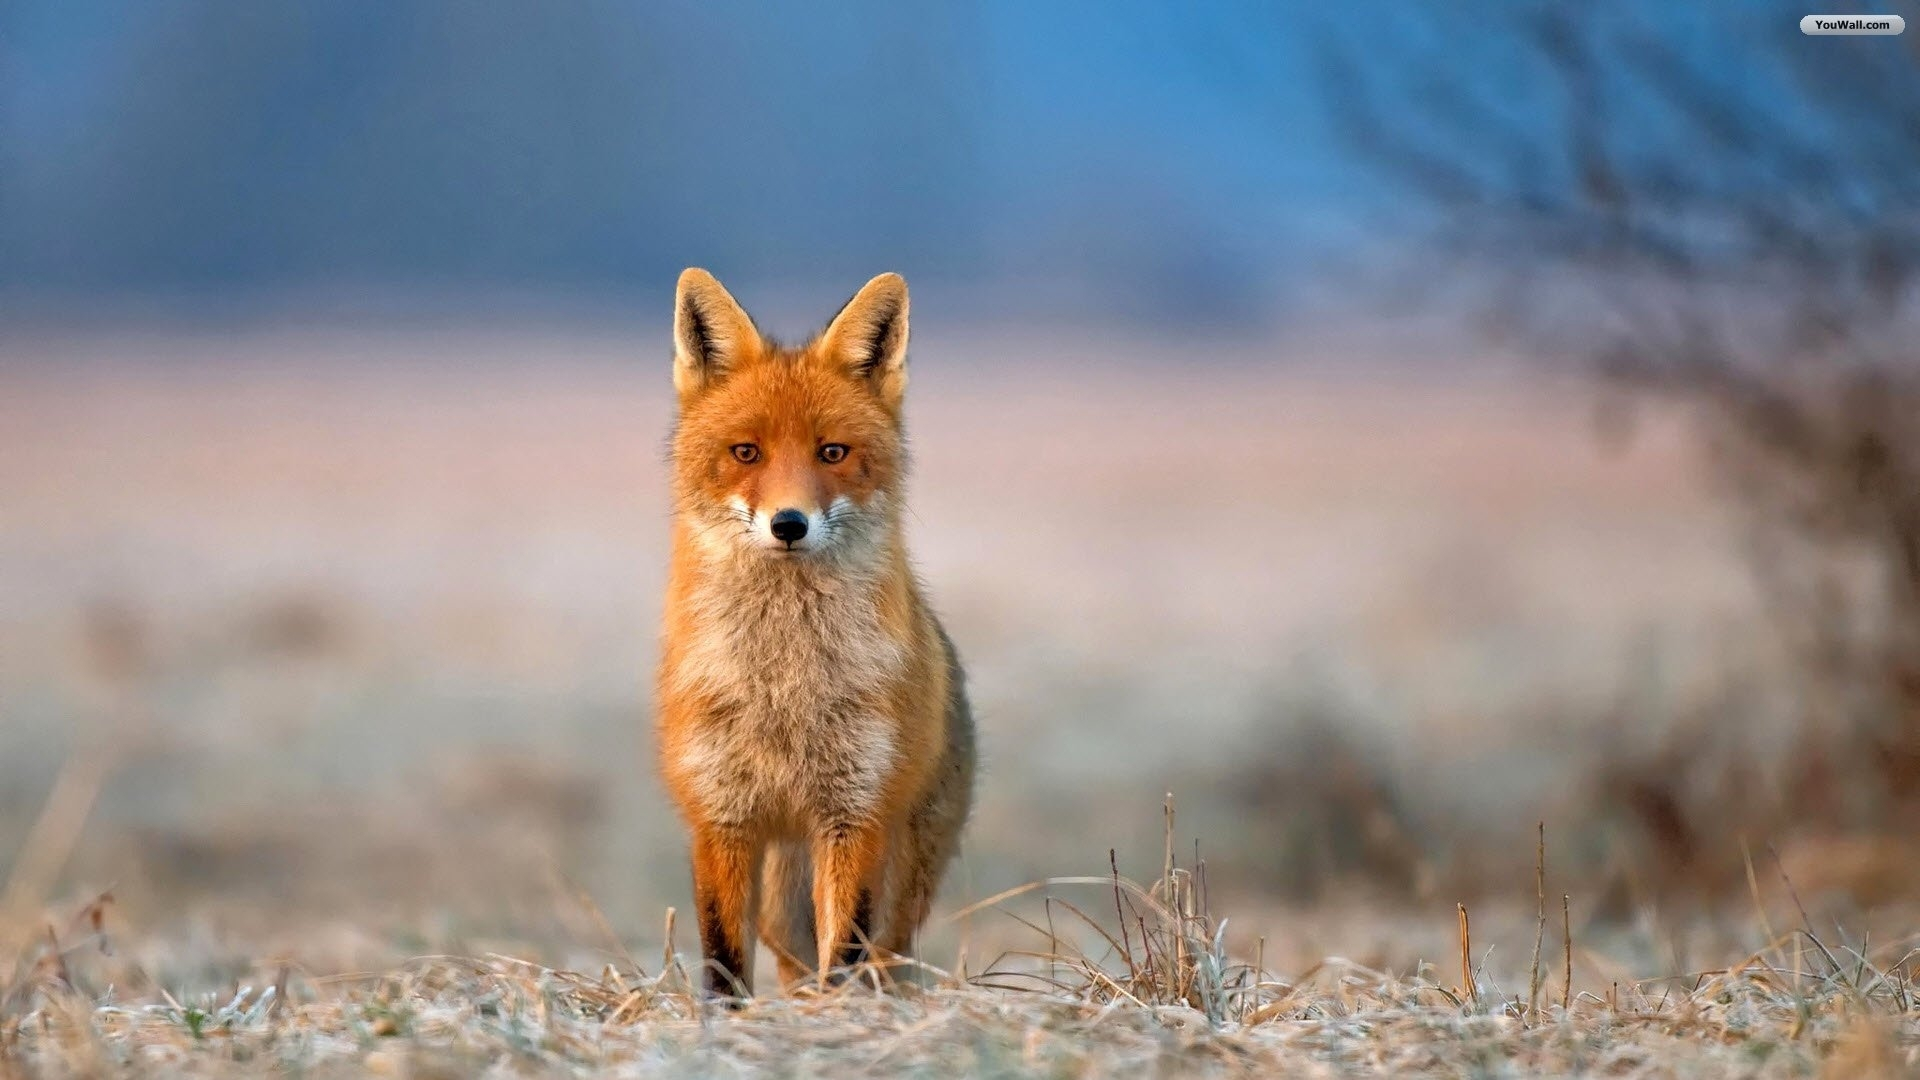 red fox background wallpaper 08061 - baltana